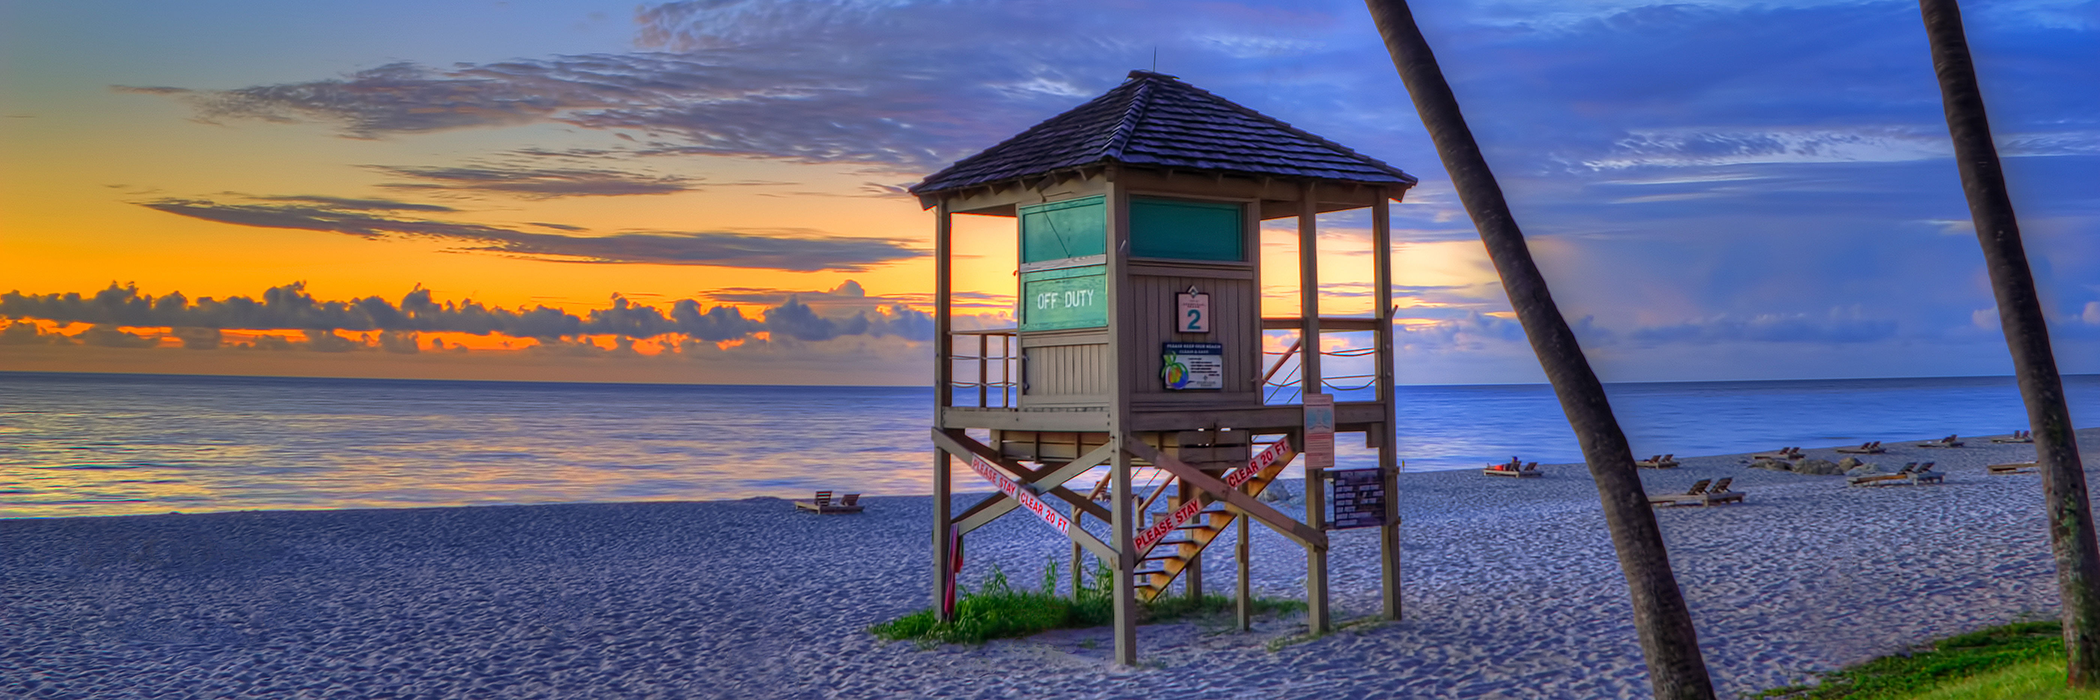 Life Guard Hut On Beach